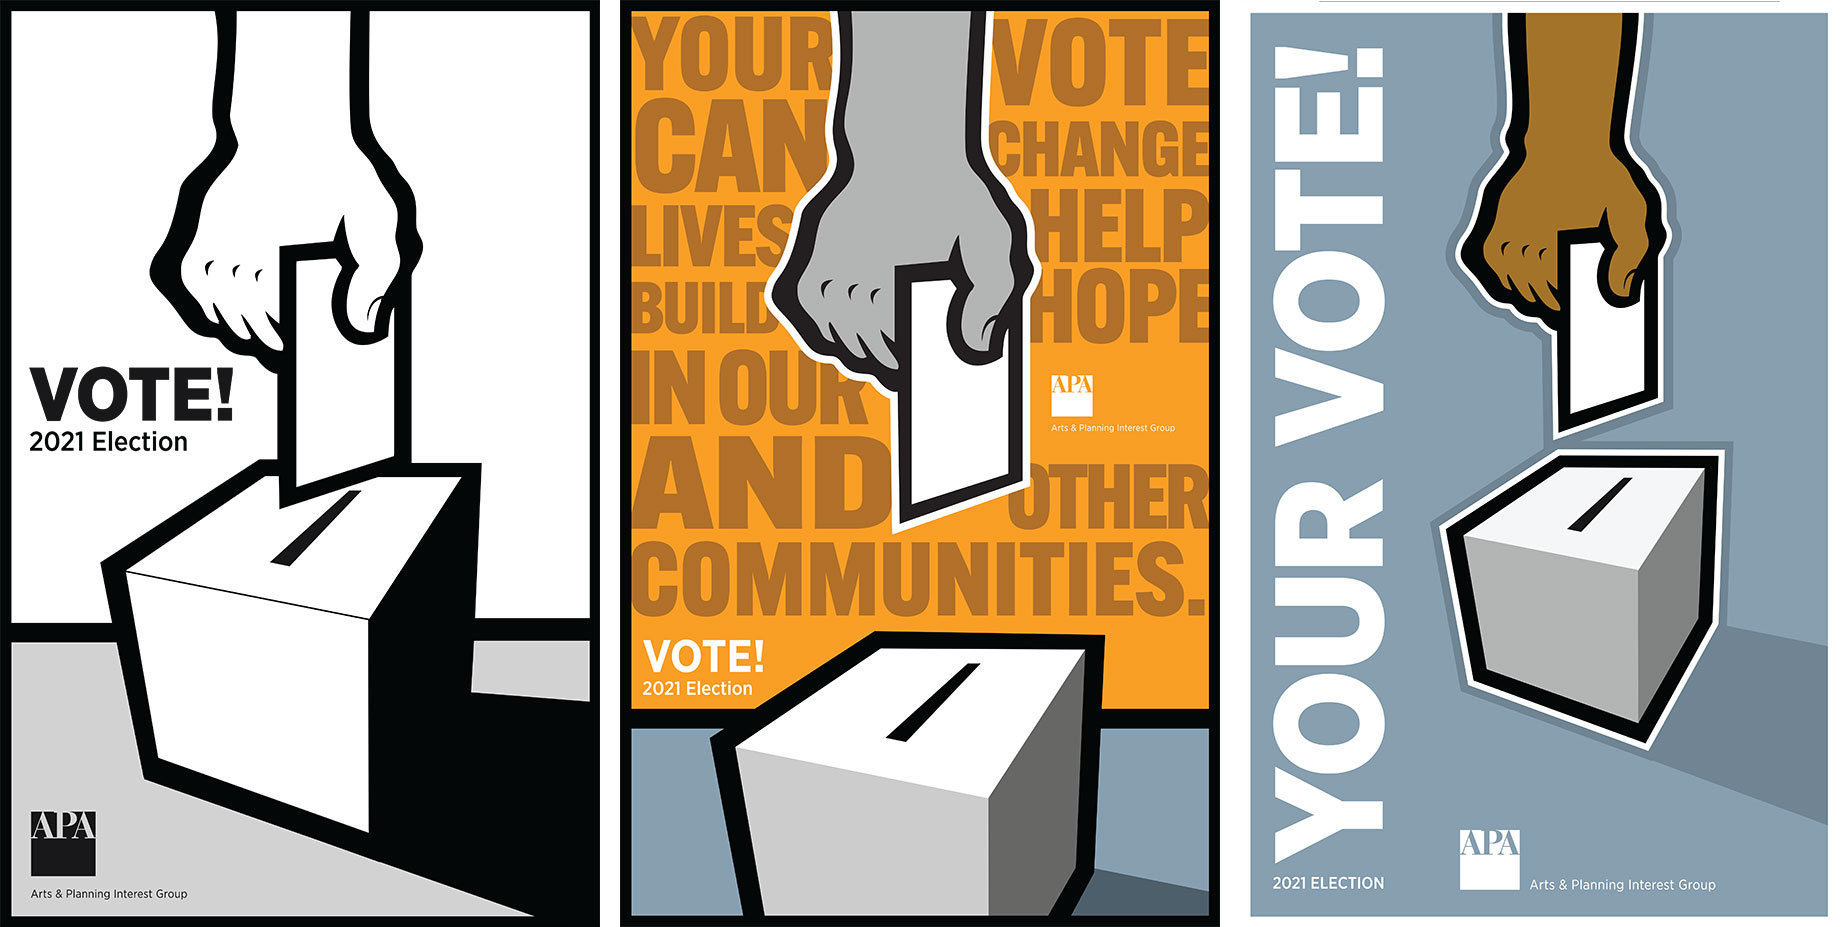 Moore created the following images to help encourage participation in the 2021 APA leadership elections.